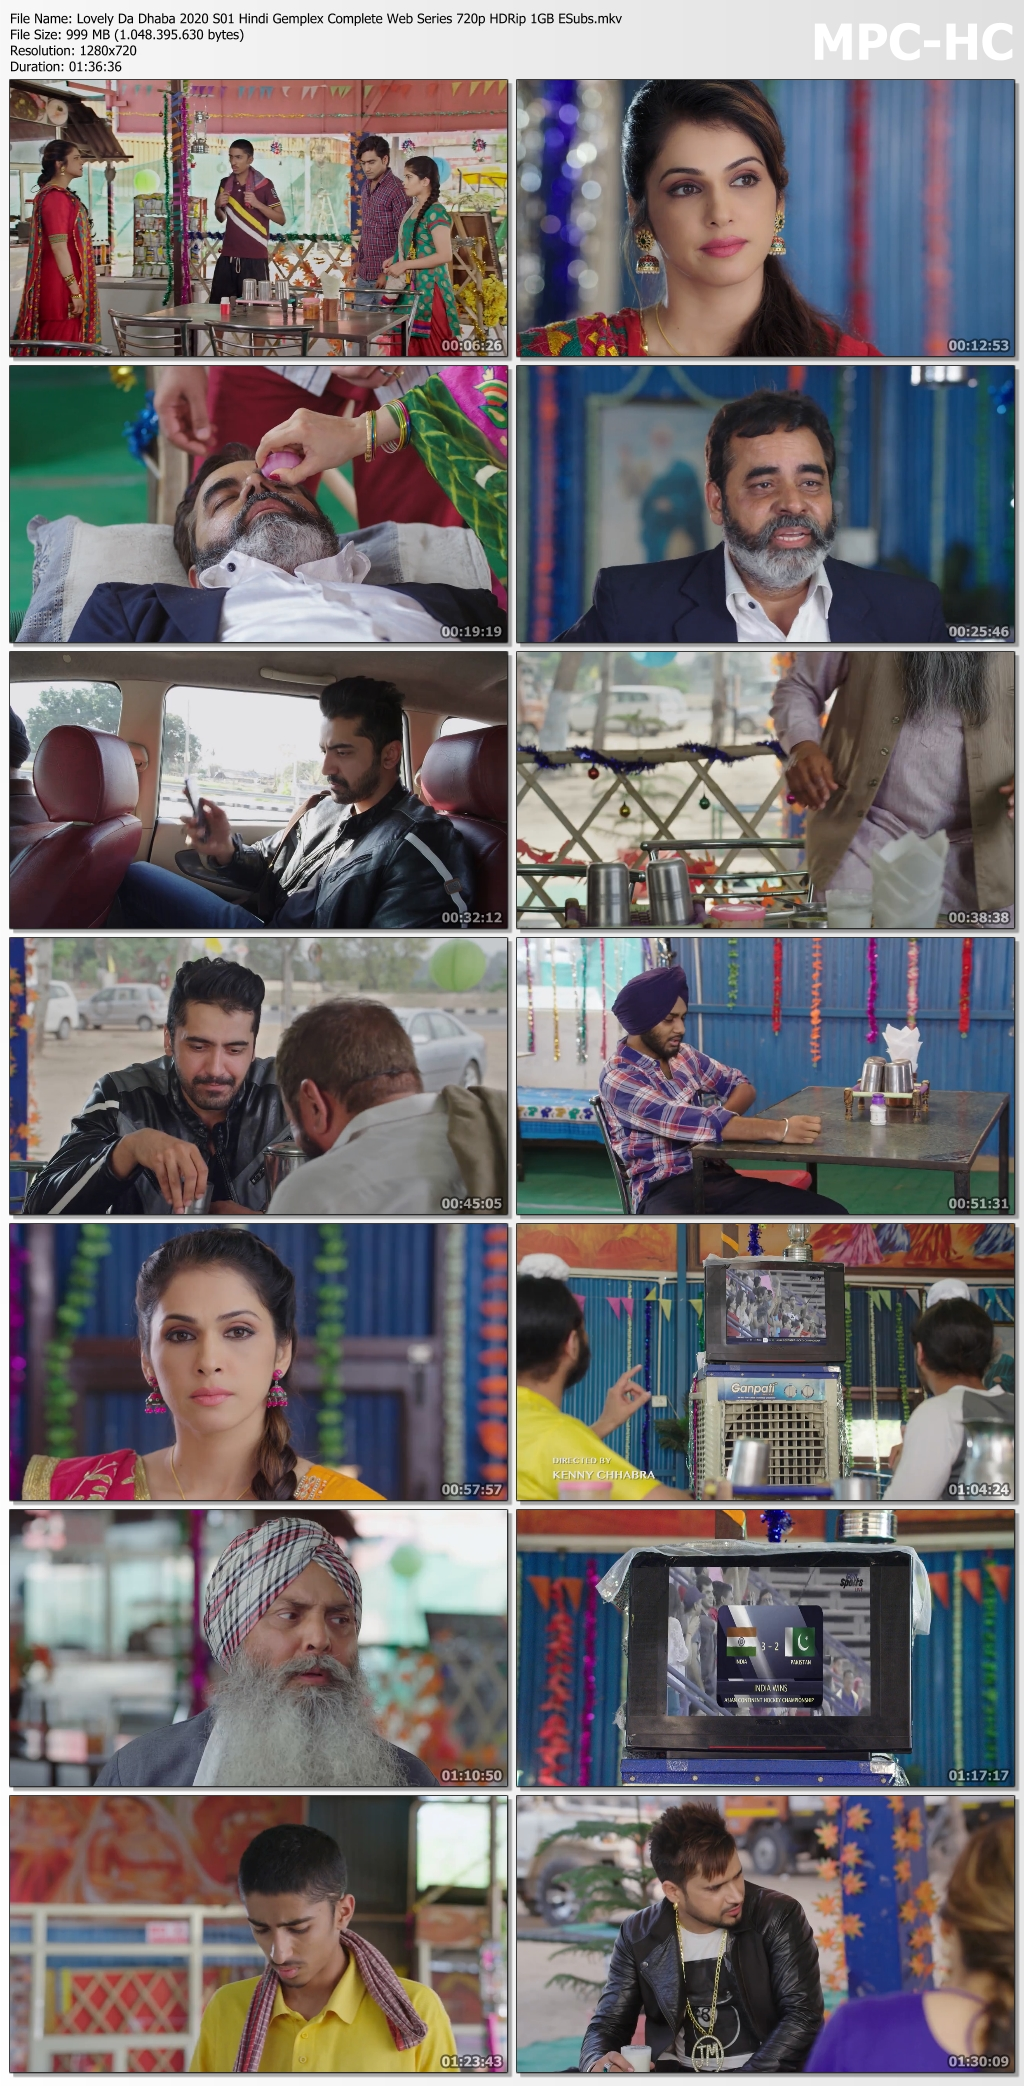 Lovely-Da-Dhaba-2020-S01-Hindi-Gemplex-Complete-Web-Series-720p-HDRip-1-GB-ESubs-mkv-thumbs